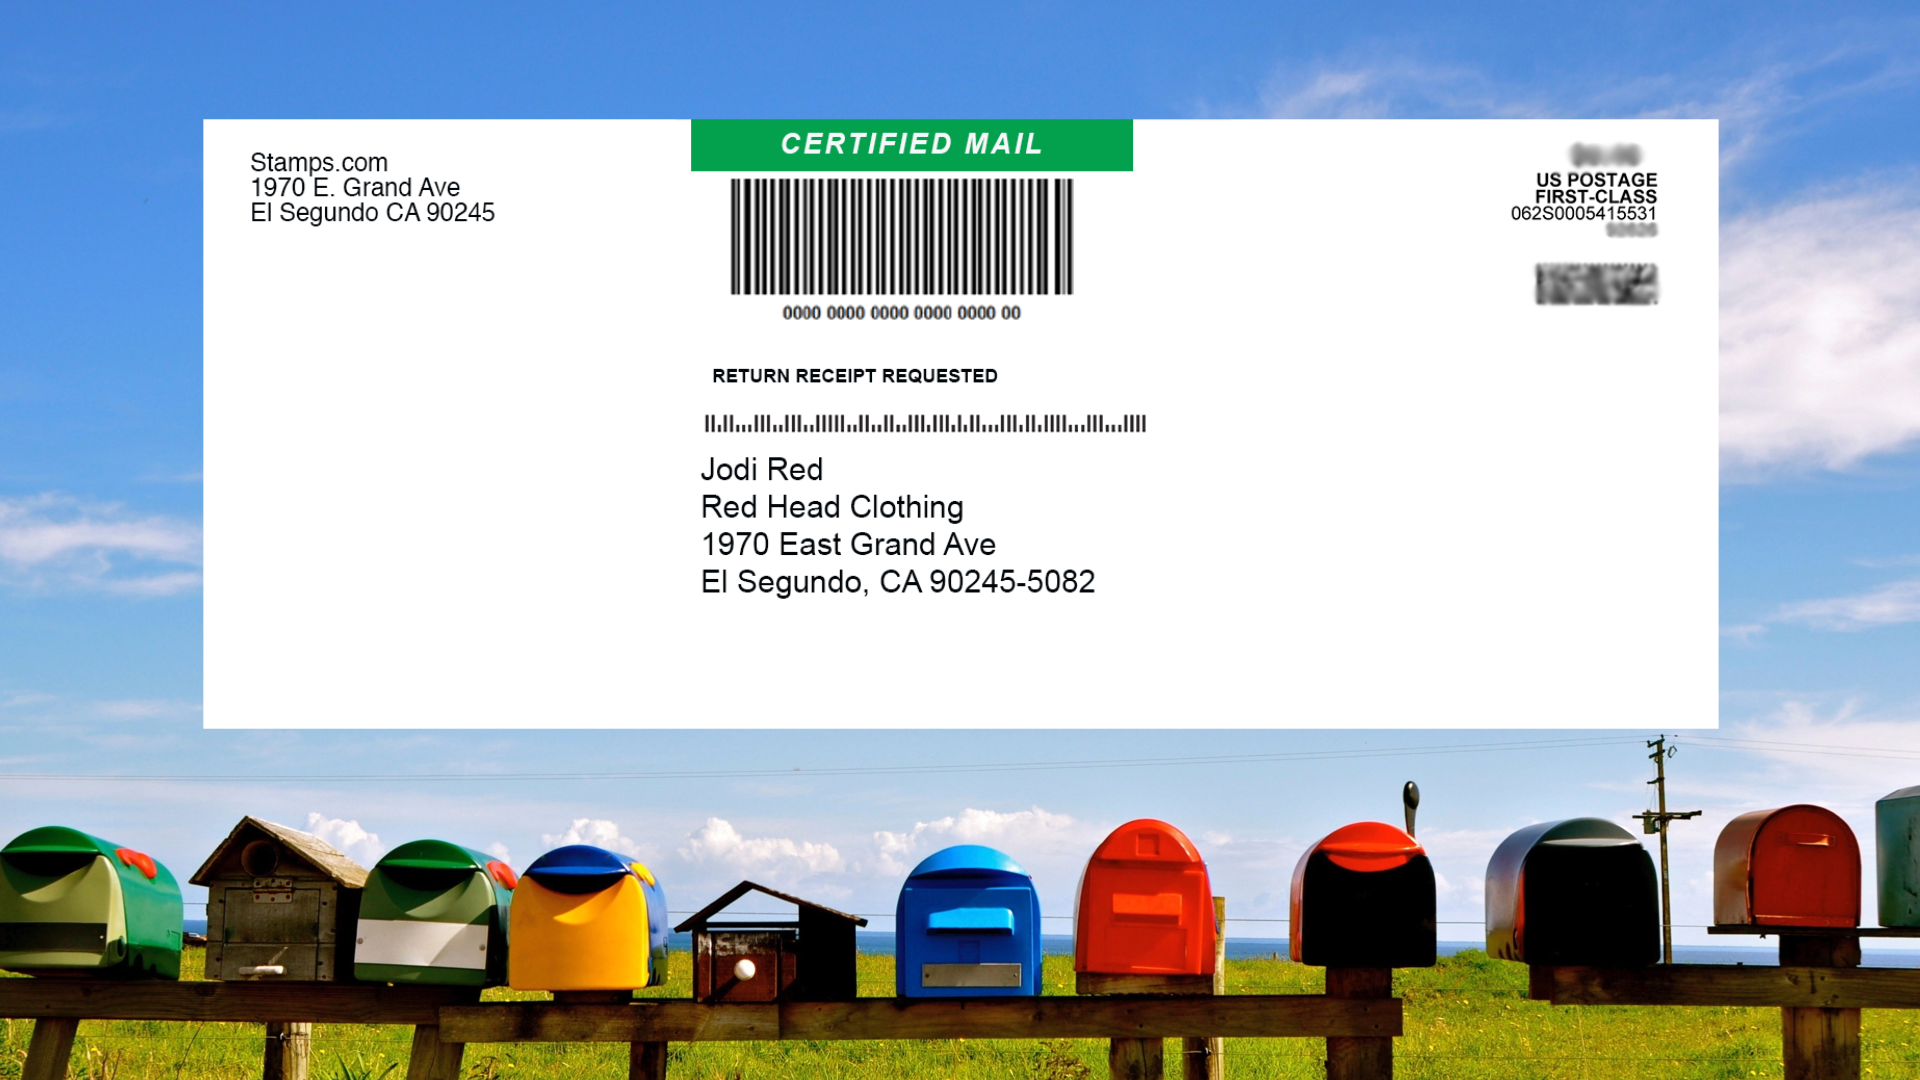 you have prepared certified mail with stampscom without filling out any forms by hand or going to the post office simply hand your certified mail envelope